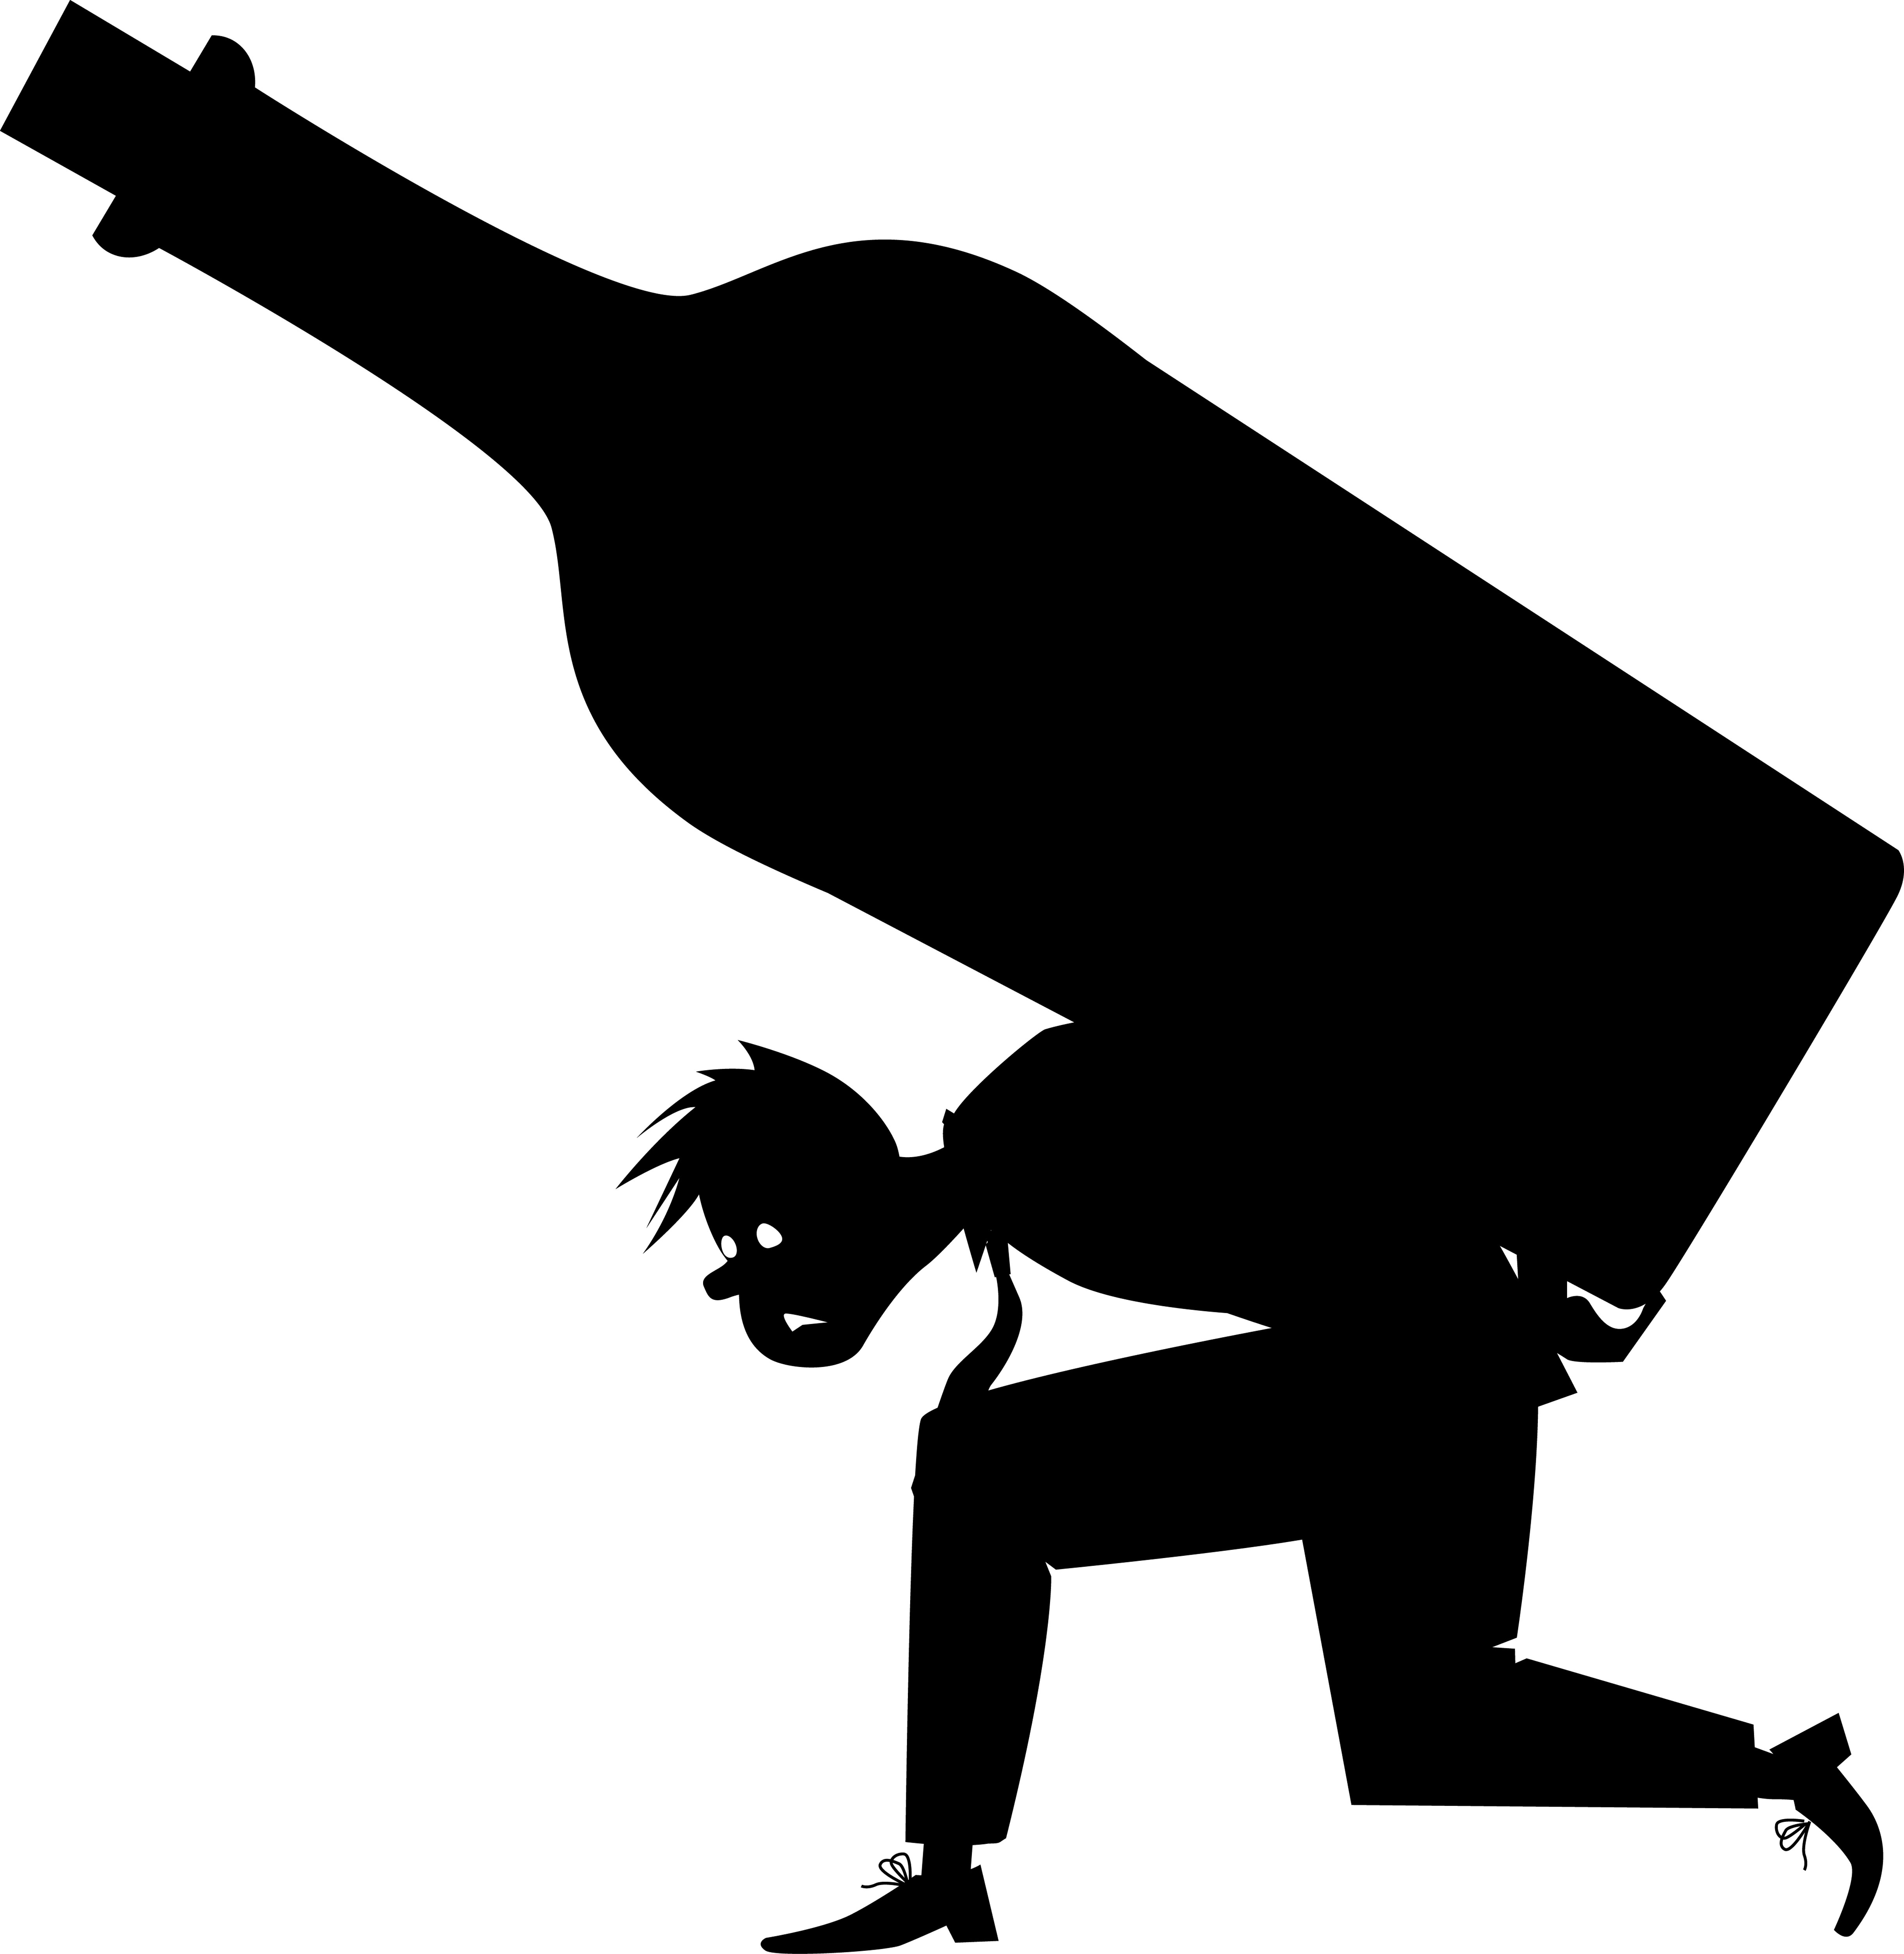 Alcohol clipart alcoholism. Perceived parental problems and